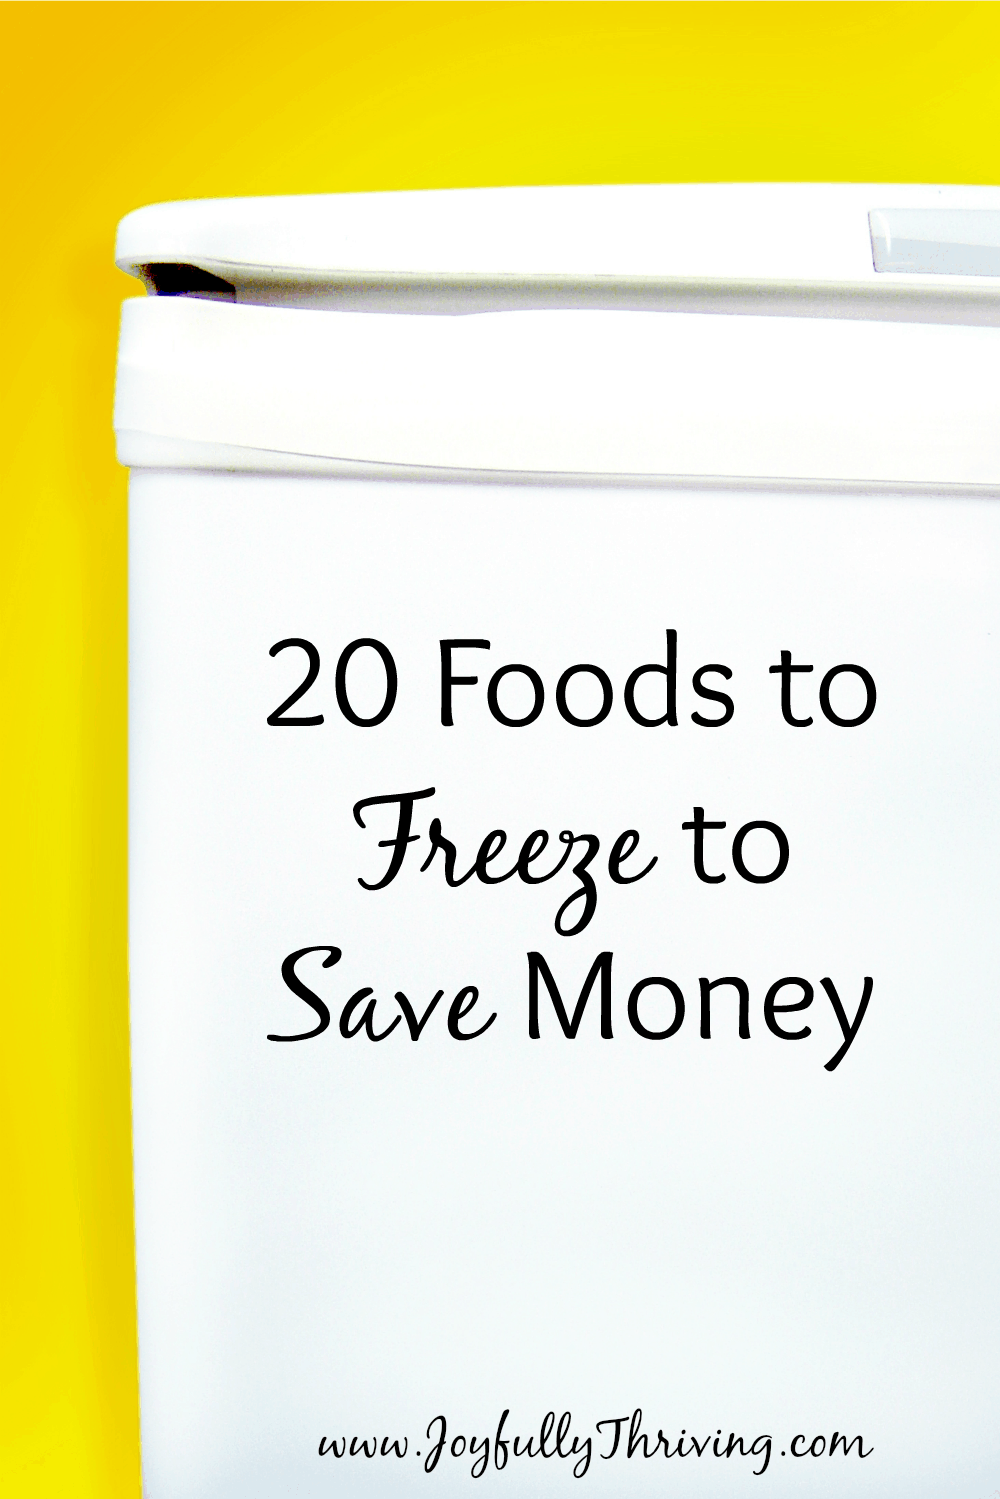 20 Foods to Freeze to Save Money